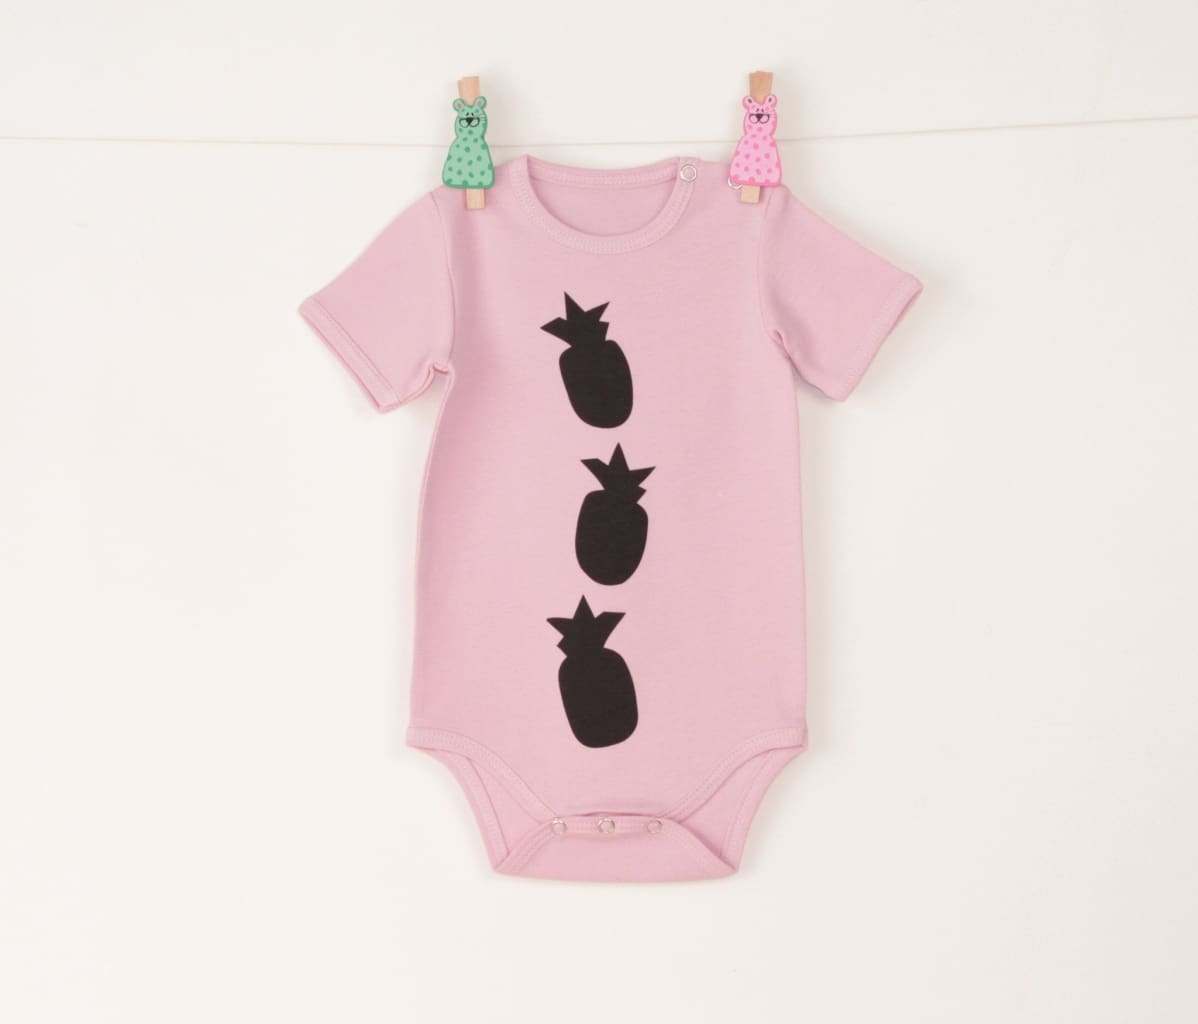 Baby Onesie Pineapple - 1 - 3 Mnth (H-62 Cm) / Pink / Us - Baby Clothes